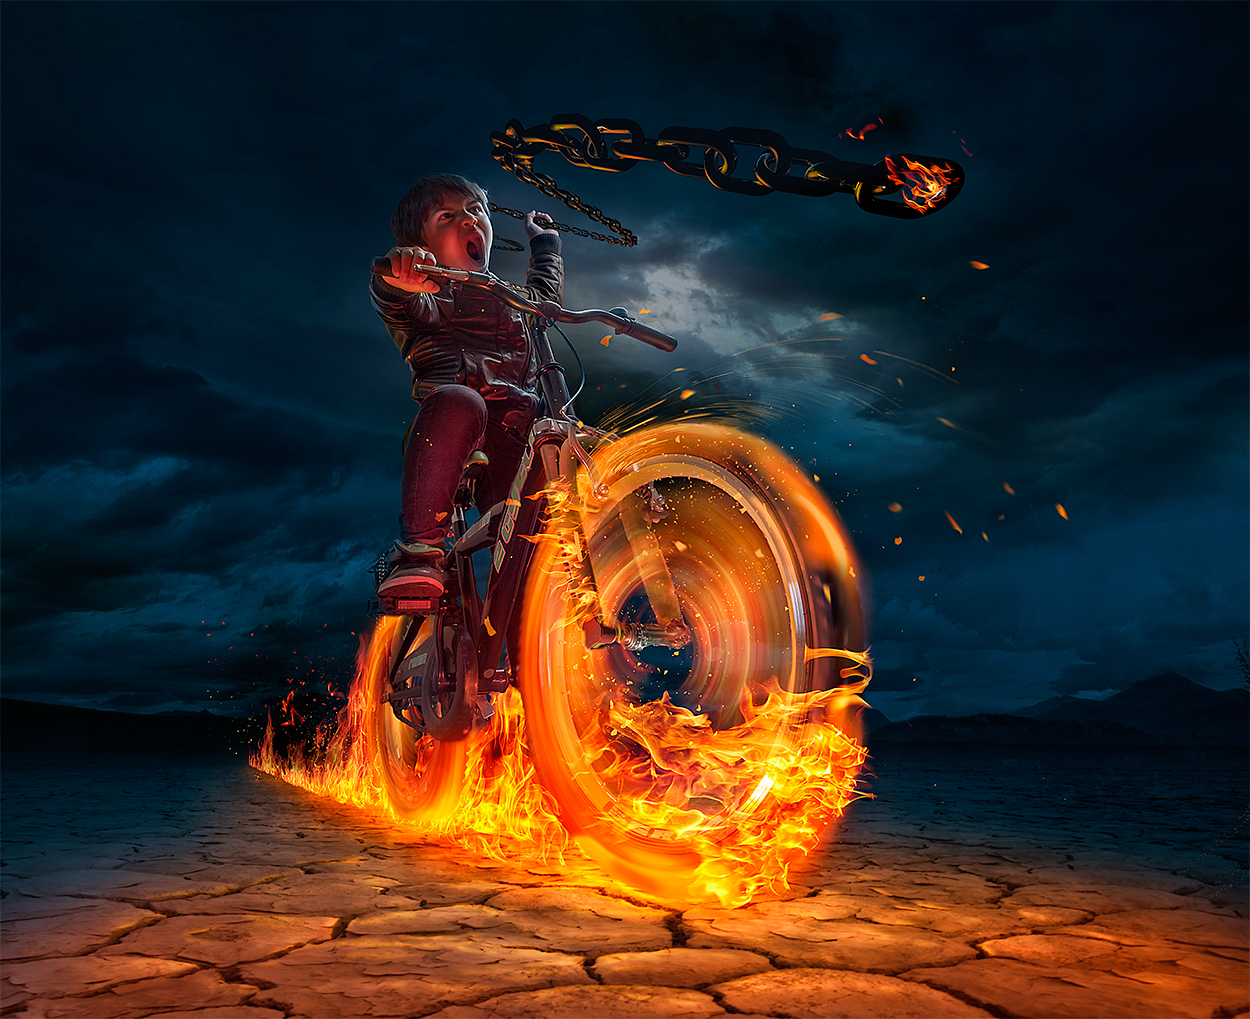 01-Ghost-Rider-Adrian-Sommeling-Surreal-Photo-Manipulation-with-a-Son-s-Help-www-designstack-co